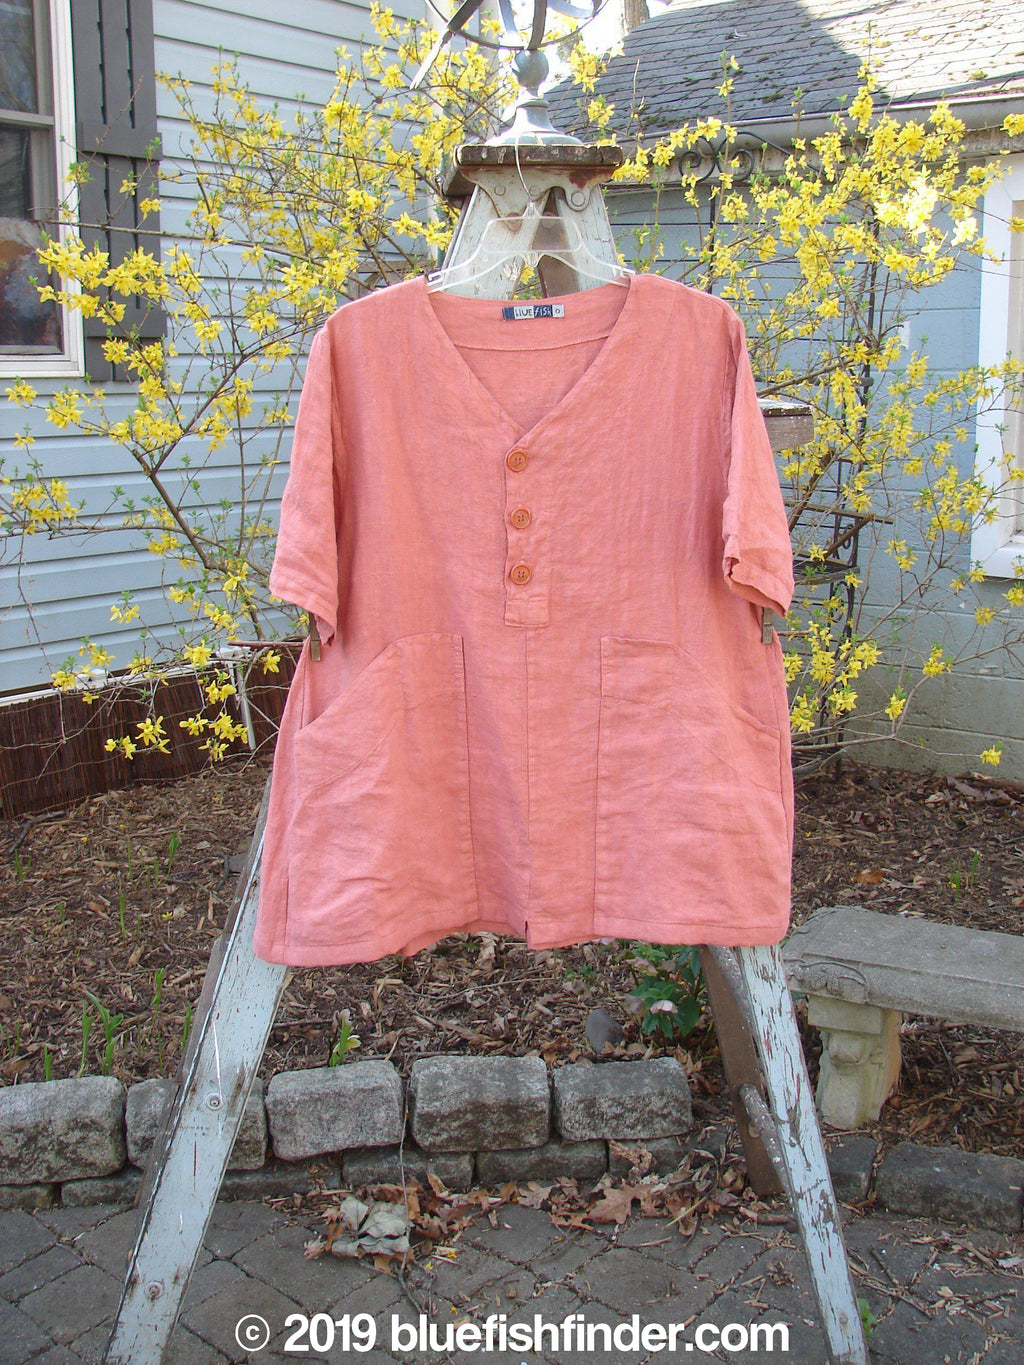 Vintage Blue Fish Clothing Barclay Big Pocket Tunic Corals Dusty Sherbet Size 0- Bluefishfinder.com